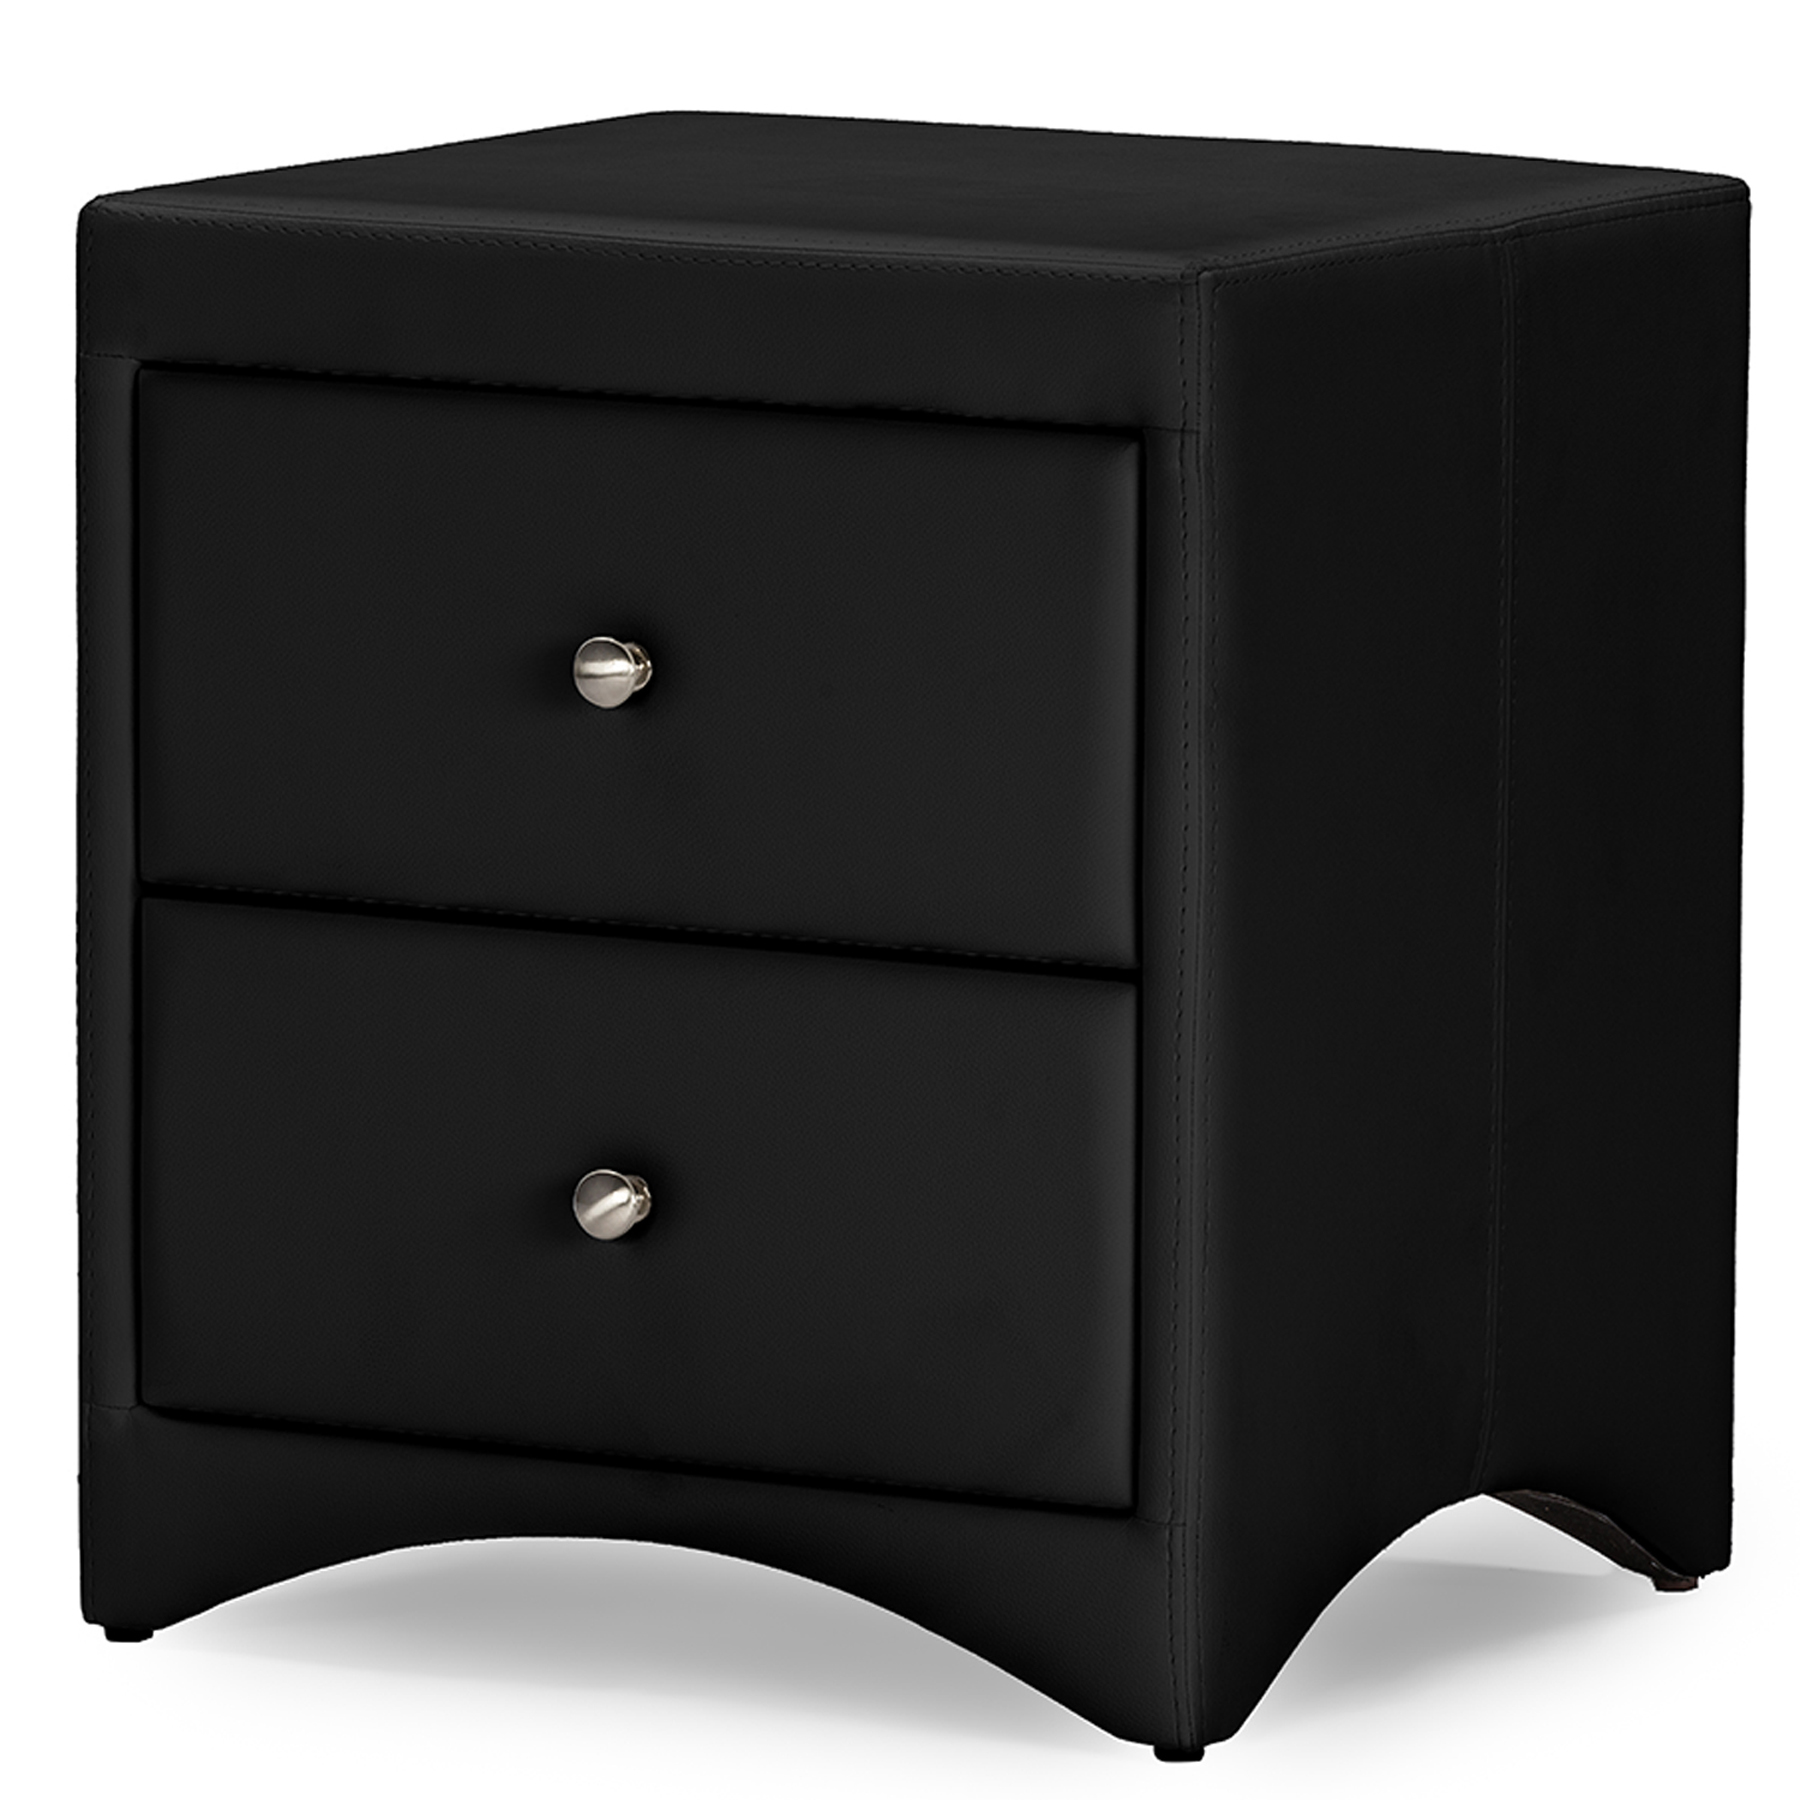 Image of Baxton Studio Dorian Black Faux Leather Upholstered Modern Nightstand